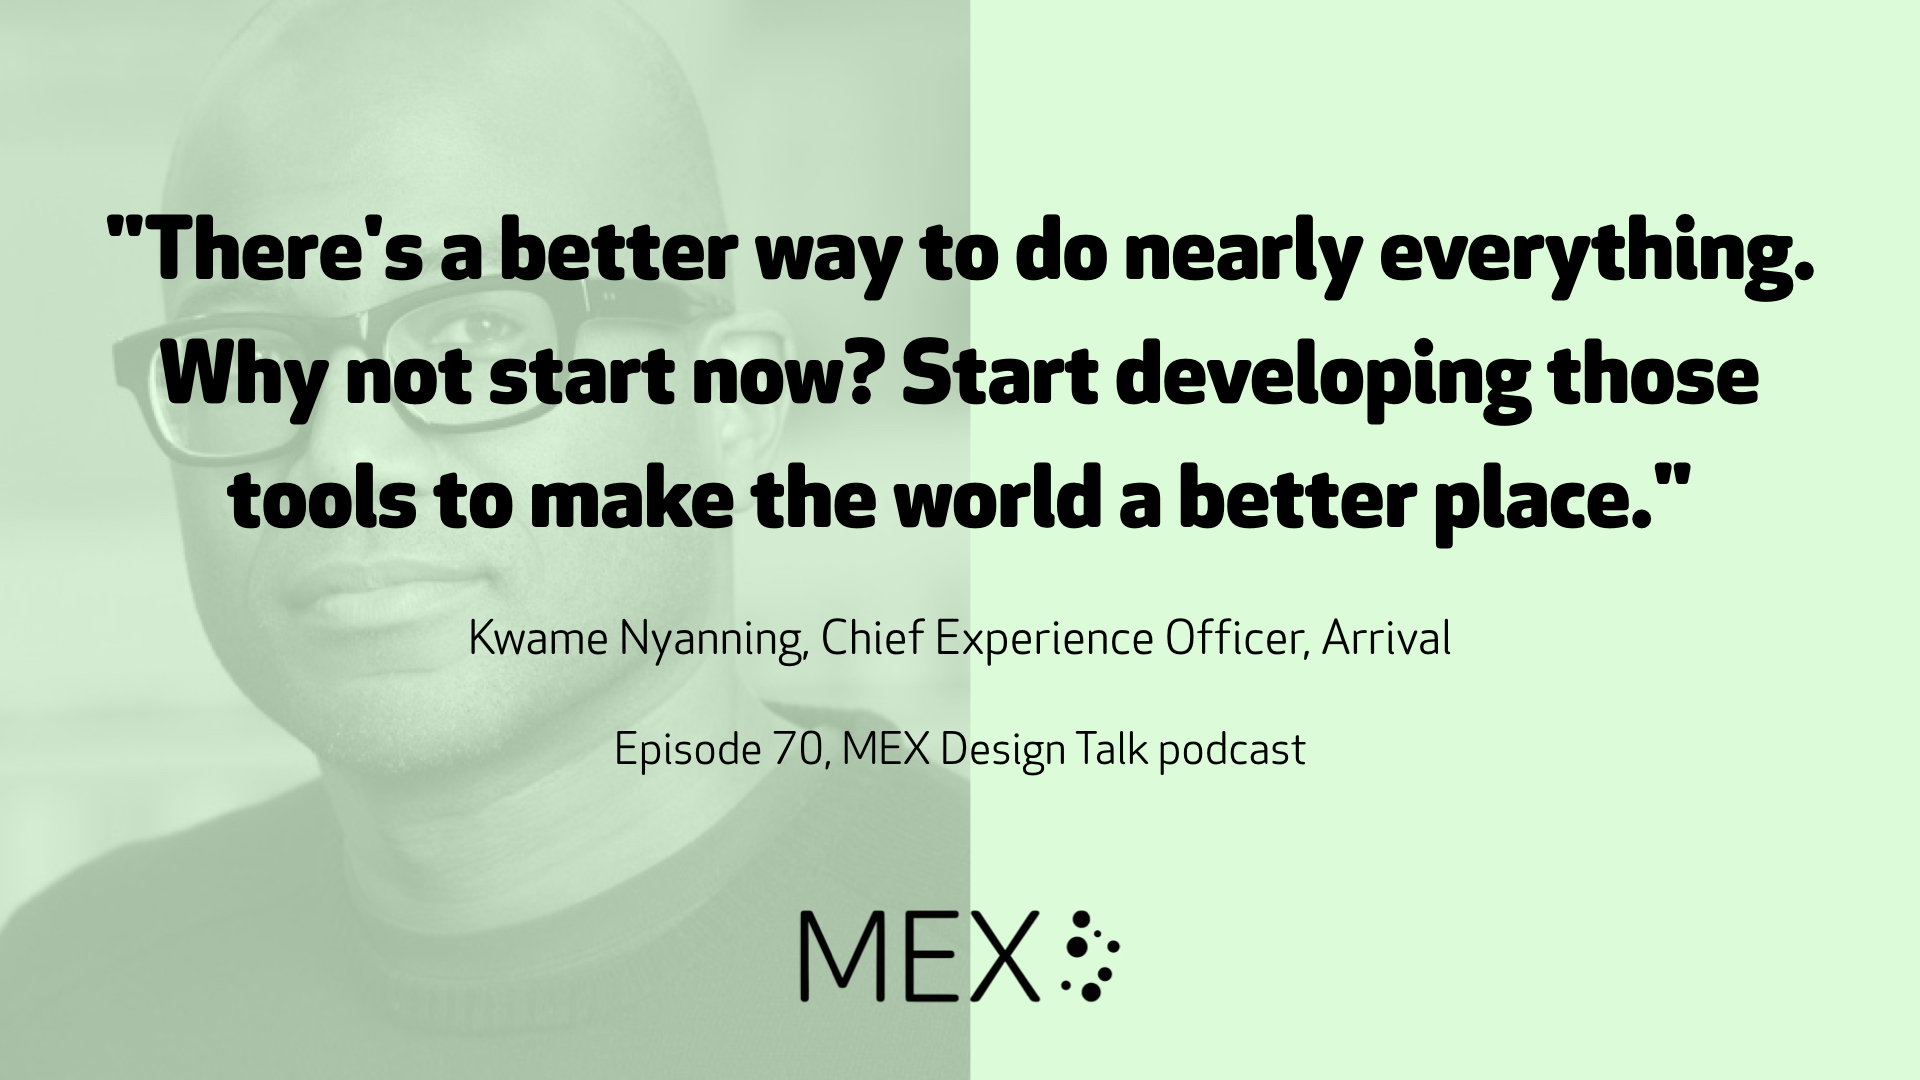 """There's a better way to do nearly everything. Why not start now? Start developing those tools to make the world a better place.""  Kwame Nyanning, Chief Experience Officer, Arrival  Episode 70, MEX Design Talk podcast"